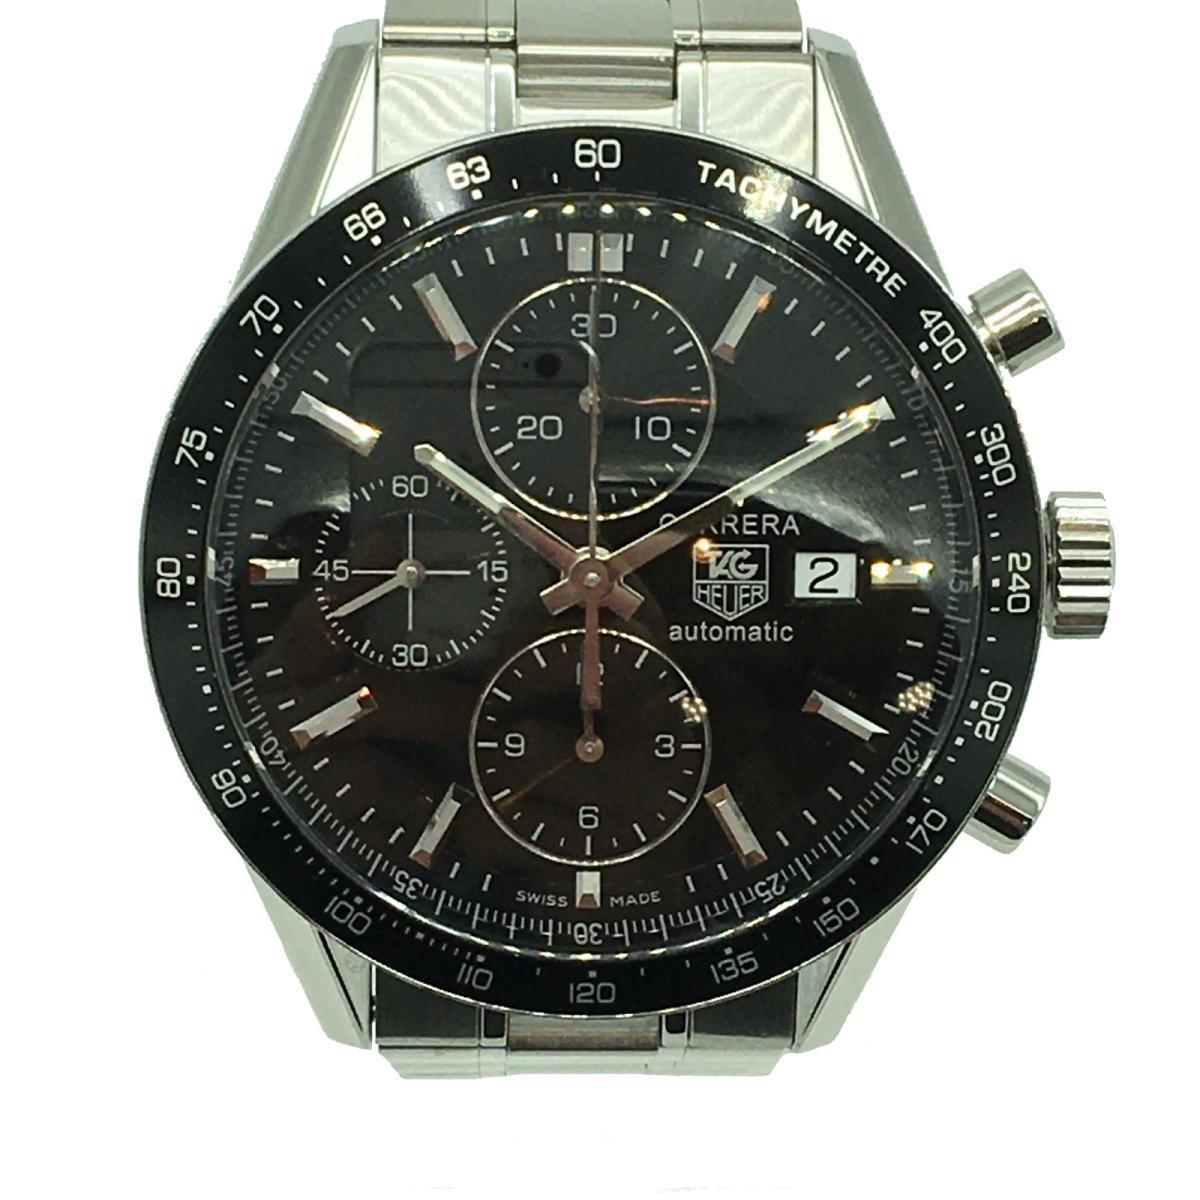 TAG HEUER Carrera Racing Special SS Men's Watch Automatic Stainless Steel (CV201E.BA0794)